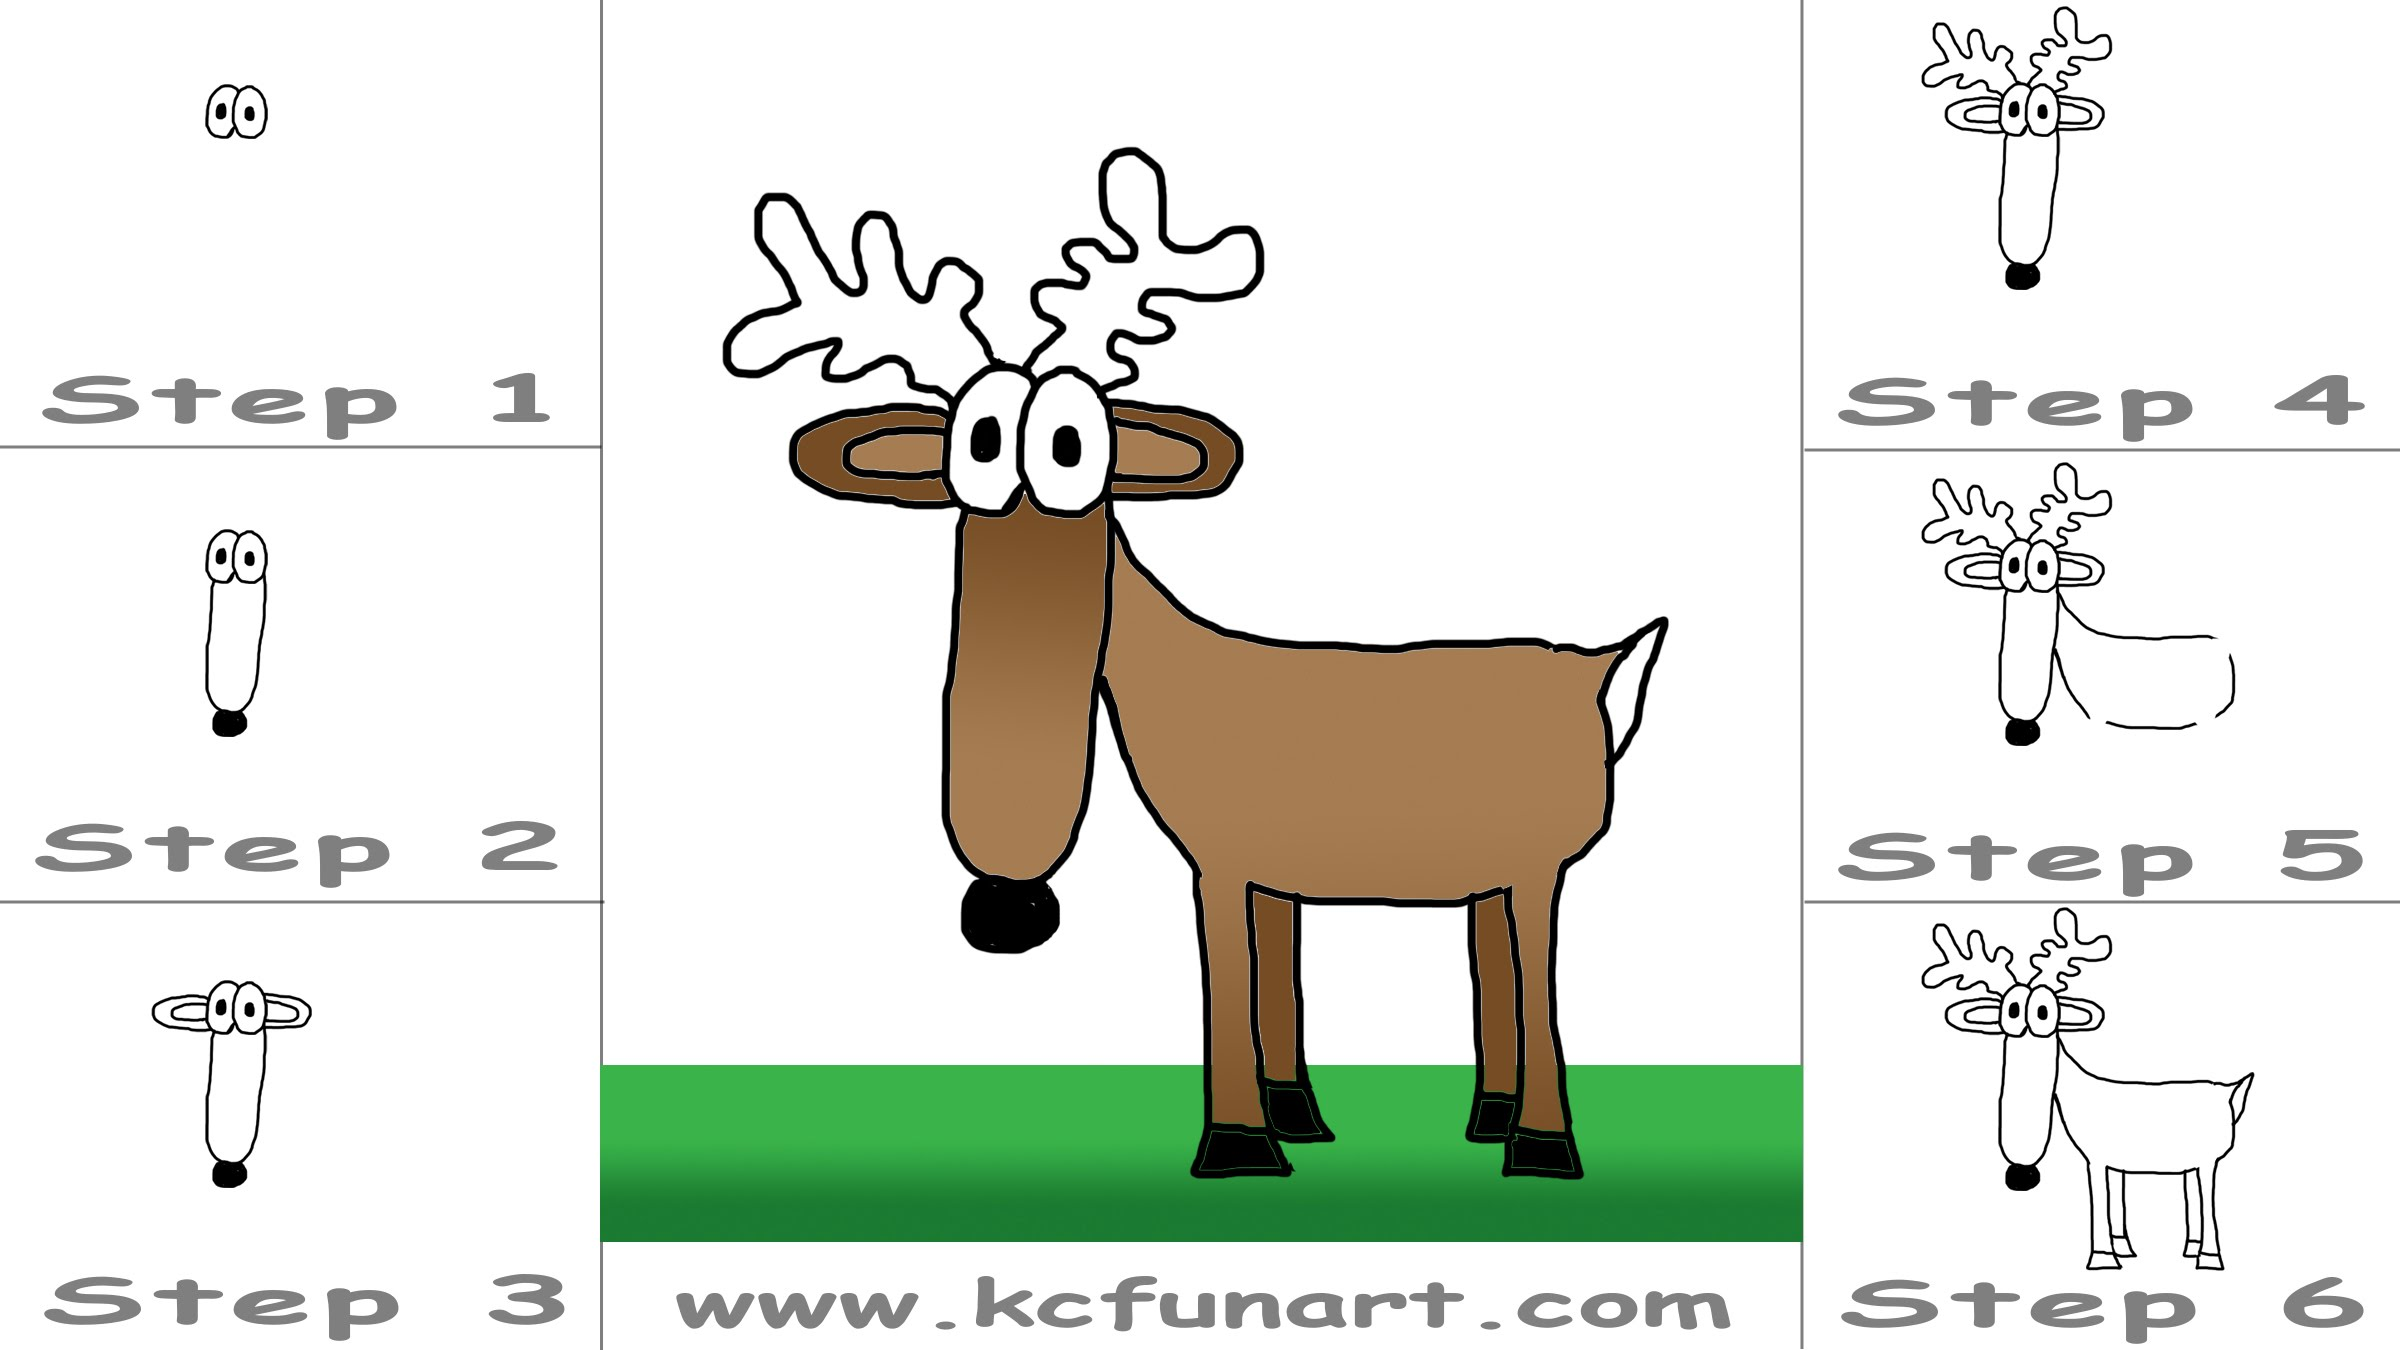 cartoon deer drawing at getdrawings com free for personal use rh getdrawings com how to draw a cute cartoon deer how to draw a cartoon deer step by step